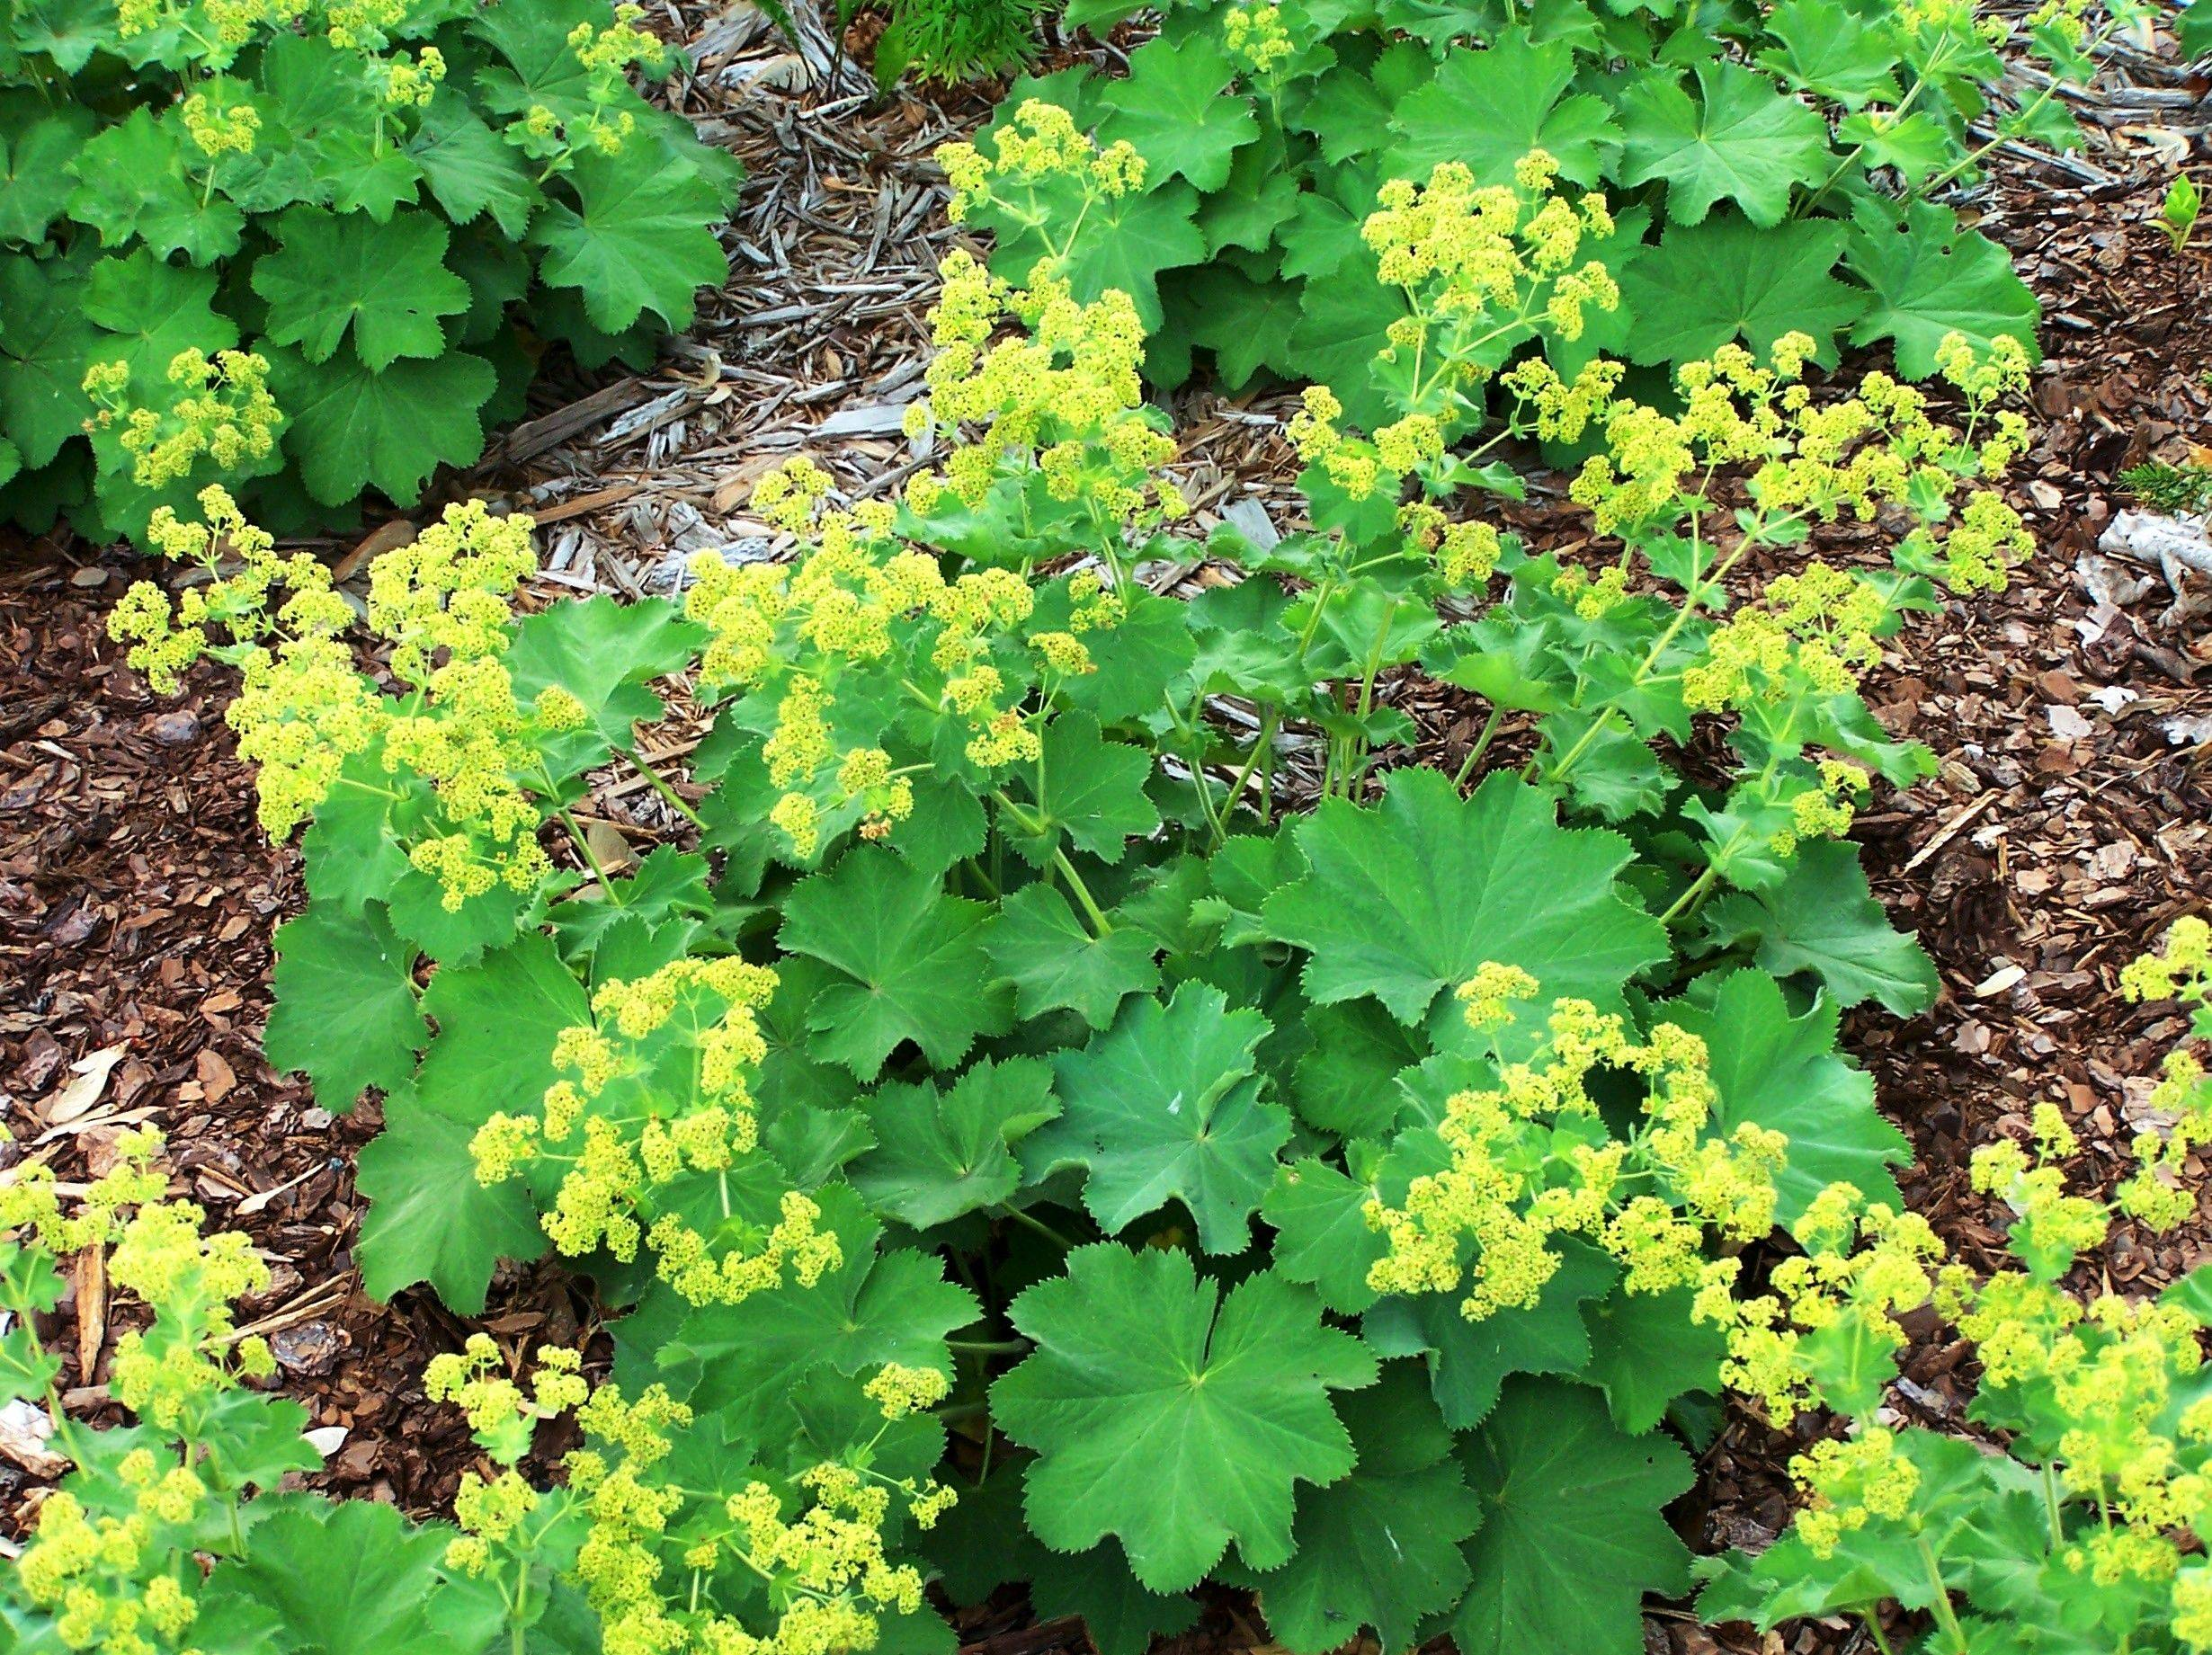 The flowers of lady's mantle appear in July.